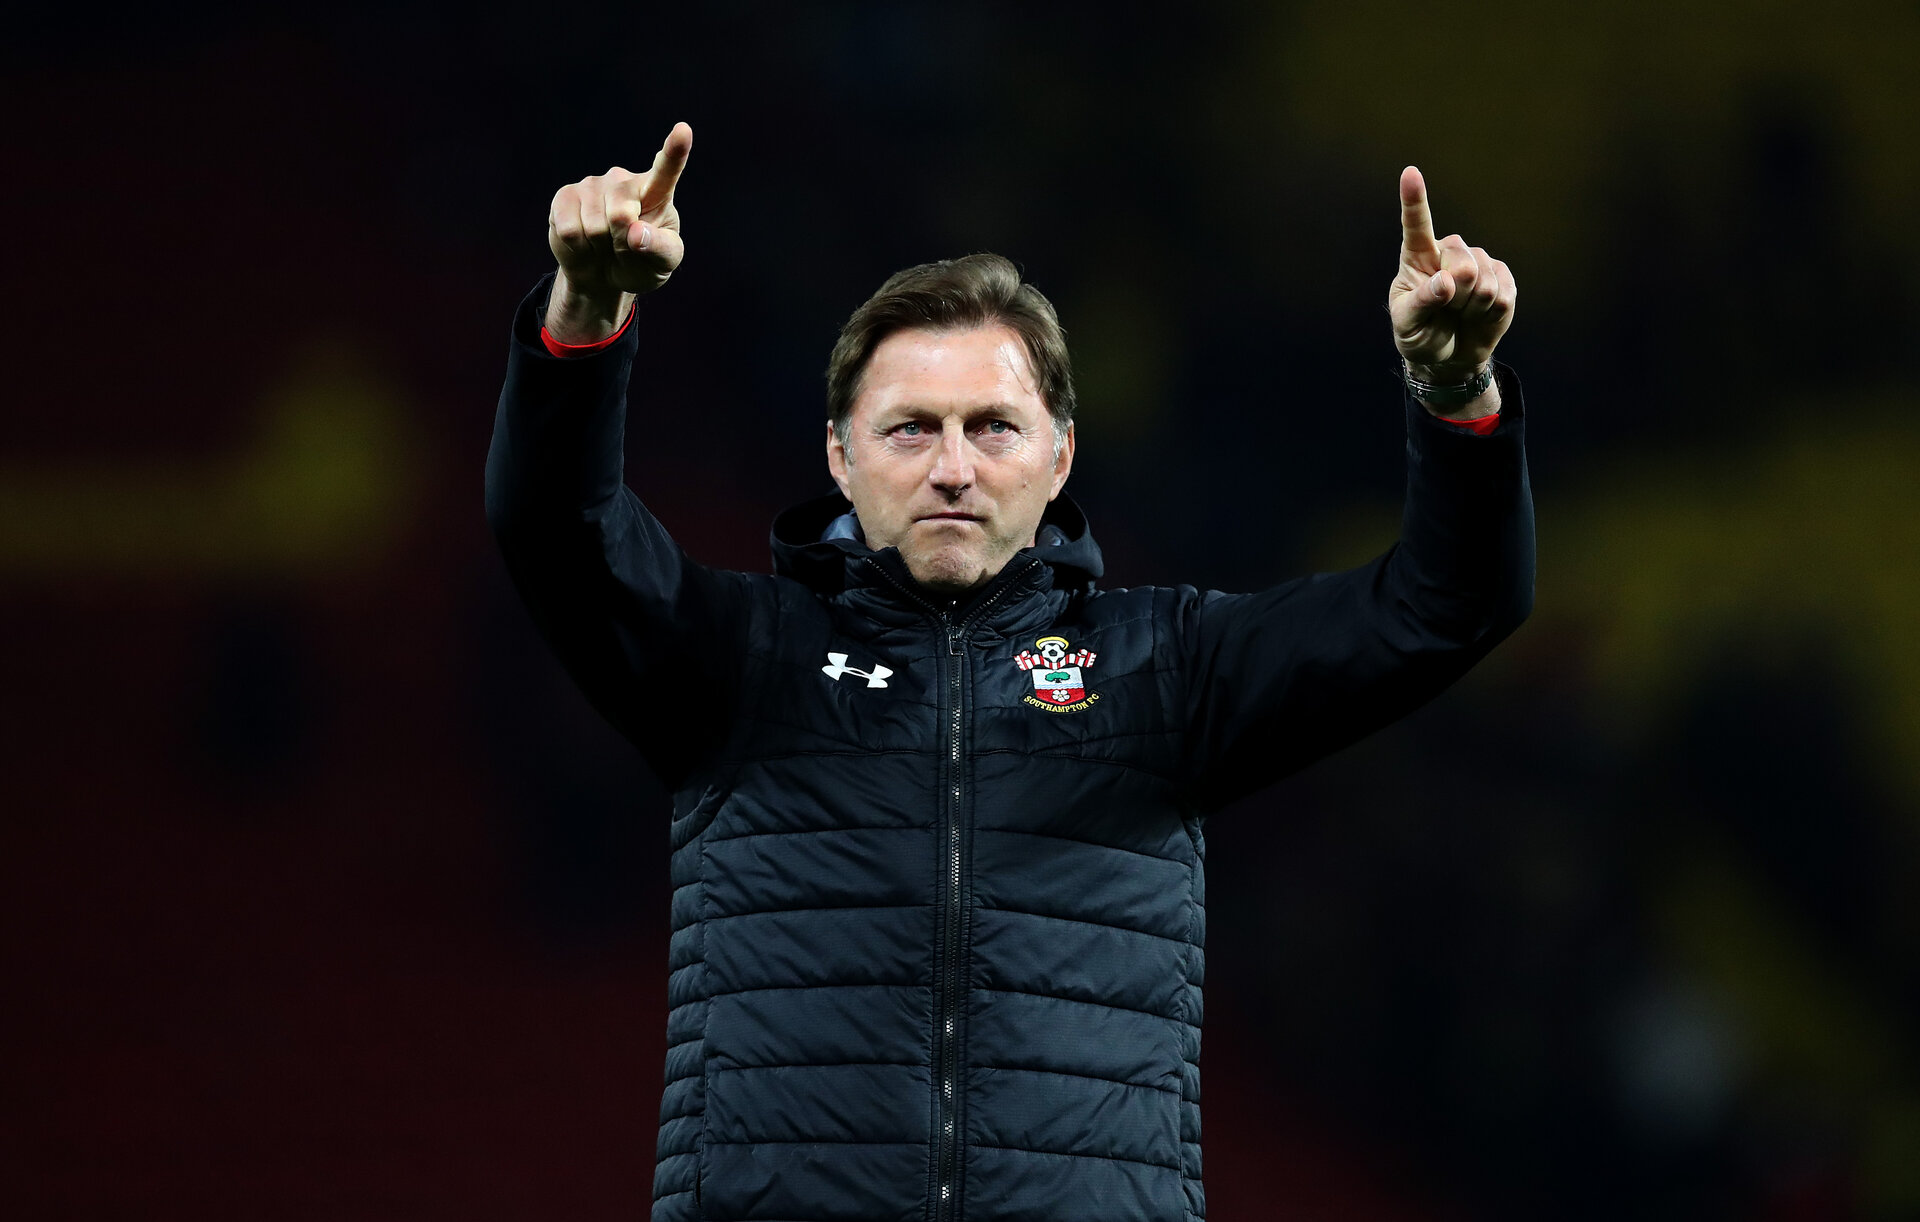 WATFORD, ENGLAND - APRIL 23: Ralph Hasenhuttl of Southampton during the Premier League match between Watford FC and Southampton FC at Vicarage Road on April 23, 2019 in Watford, United Kingdom. (Photo by Matt Watson/Southampton FC via Getty Images)